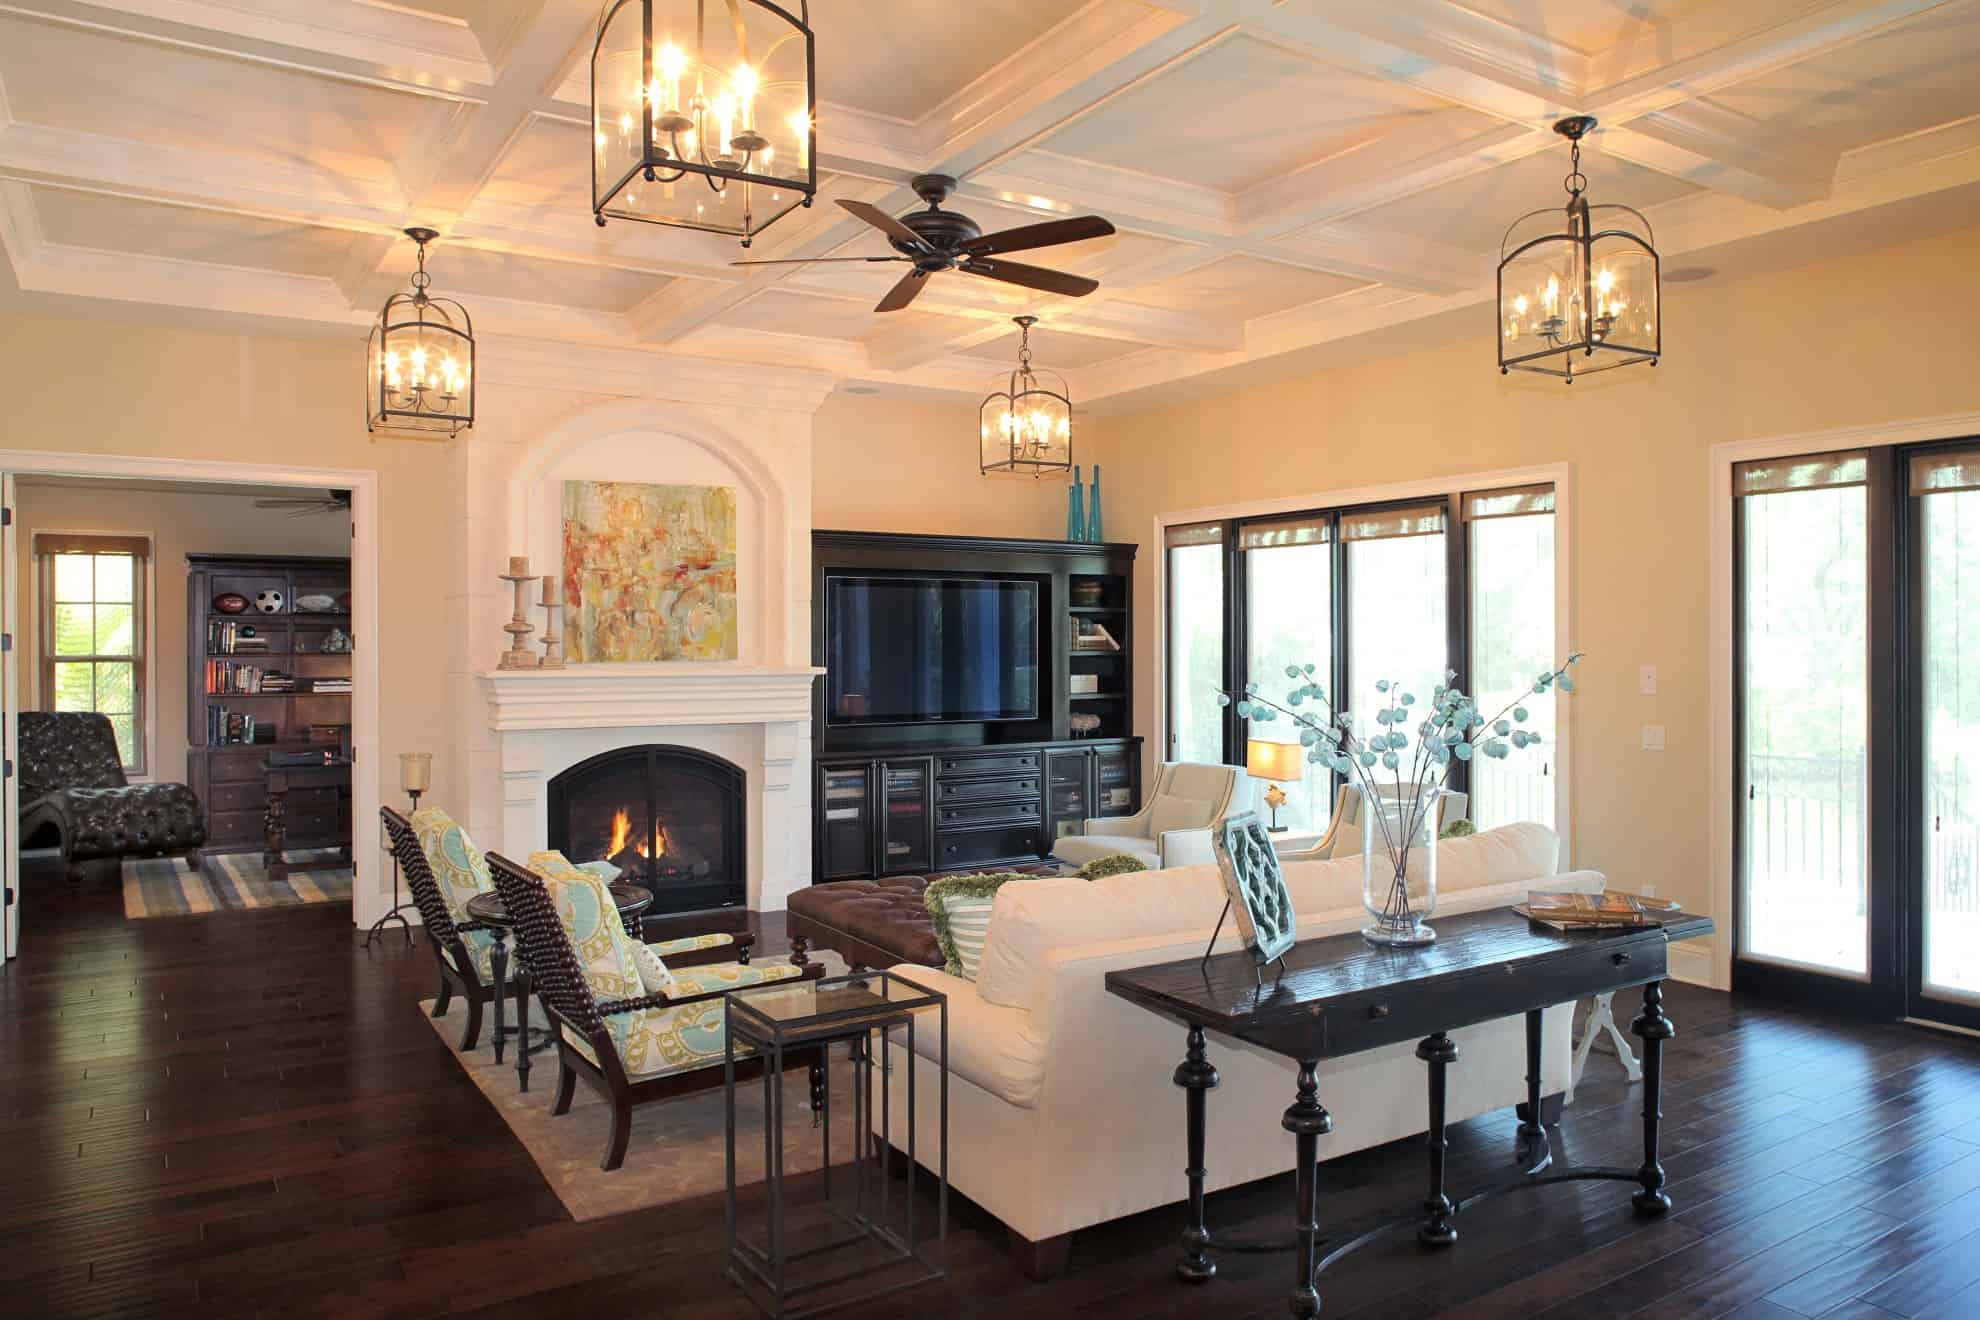 Great rooms fireplaces luxury estates devonshire custom homes Home design ideas lighting